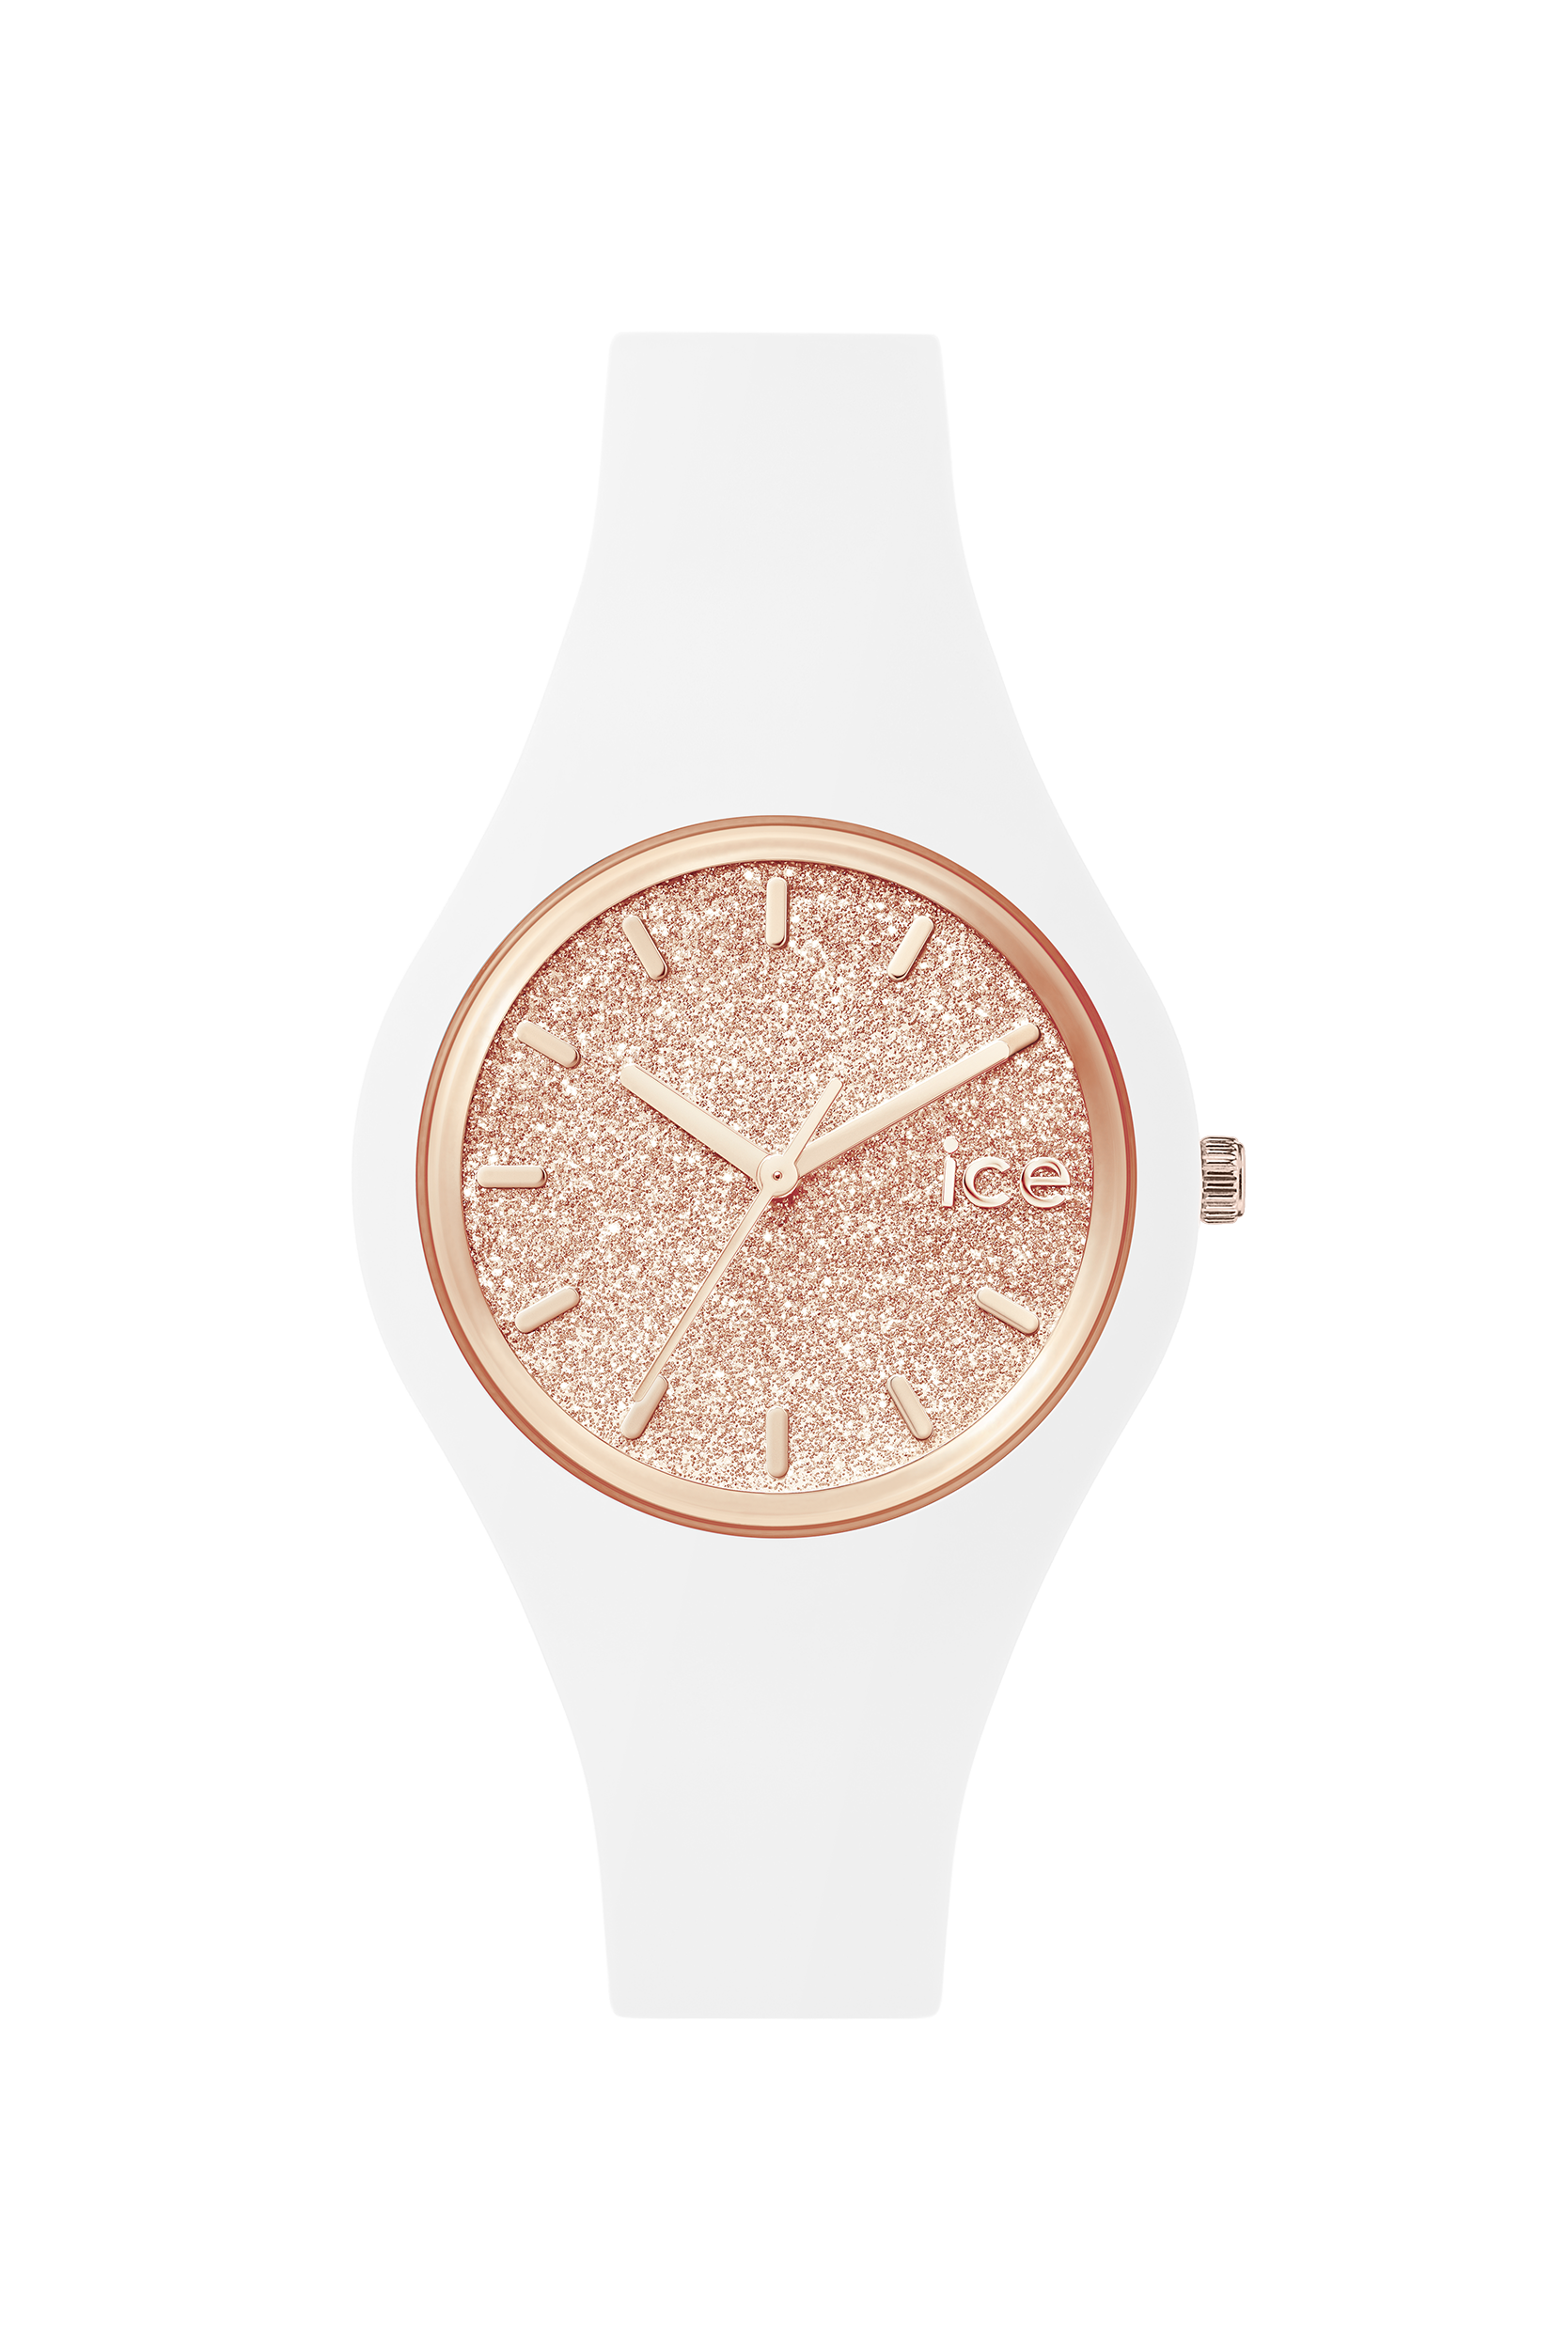 Need a beautiful watch? Look at ICE glitter - White Rose-Gold . Buy it for 99€ or £77 on Ice-Watch Official Webstore: https://www.ice-watch.com/be-en/ice/ice-glitter-p-26724.htm?coul_att_detailID=318&